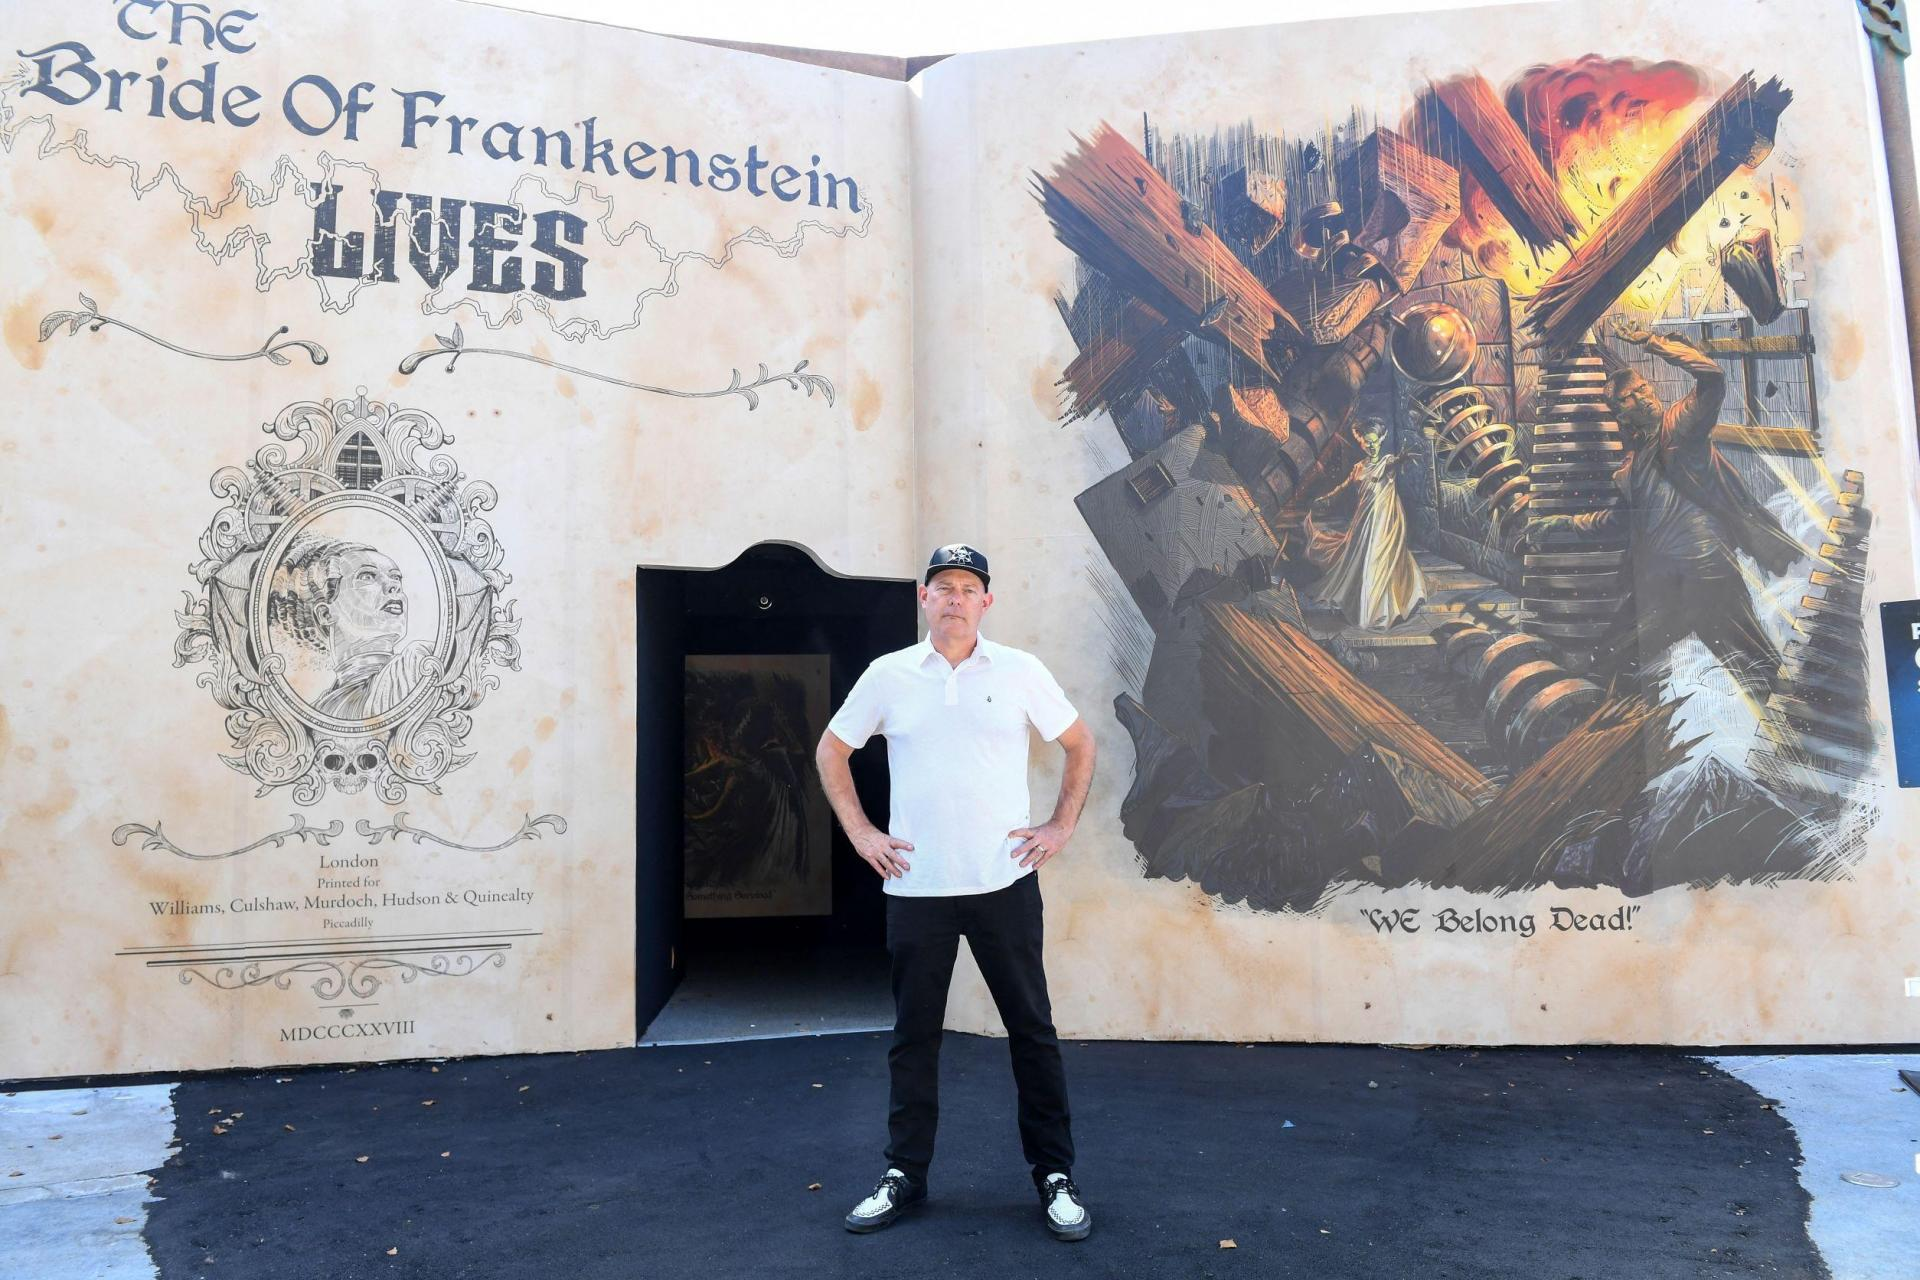 Executive producer and director John Murdy gives a tour of 'The Bride of Frankenstein' maze he is setting up for Halloween Horror Nights.